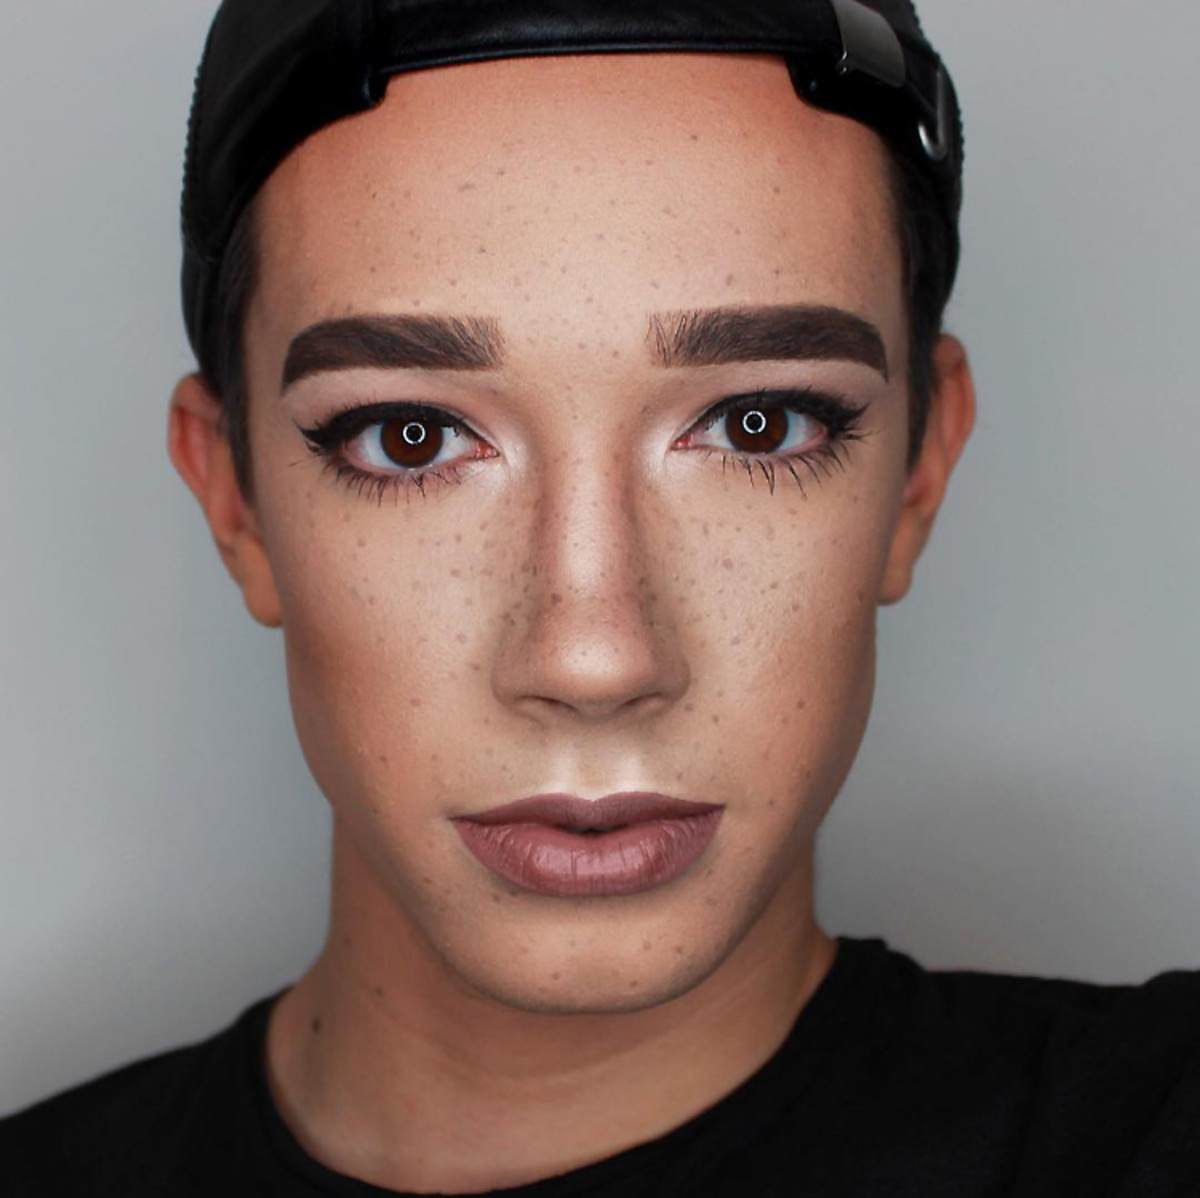 CoverGirl coverboy James Charles